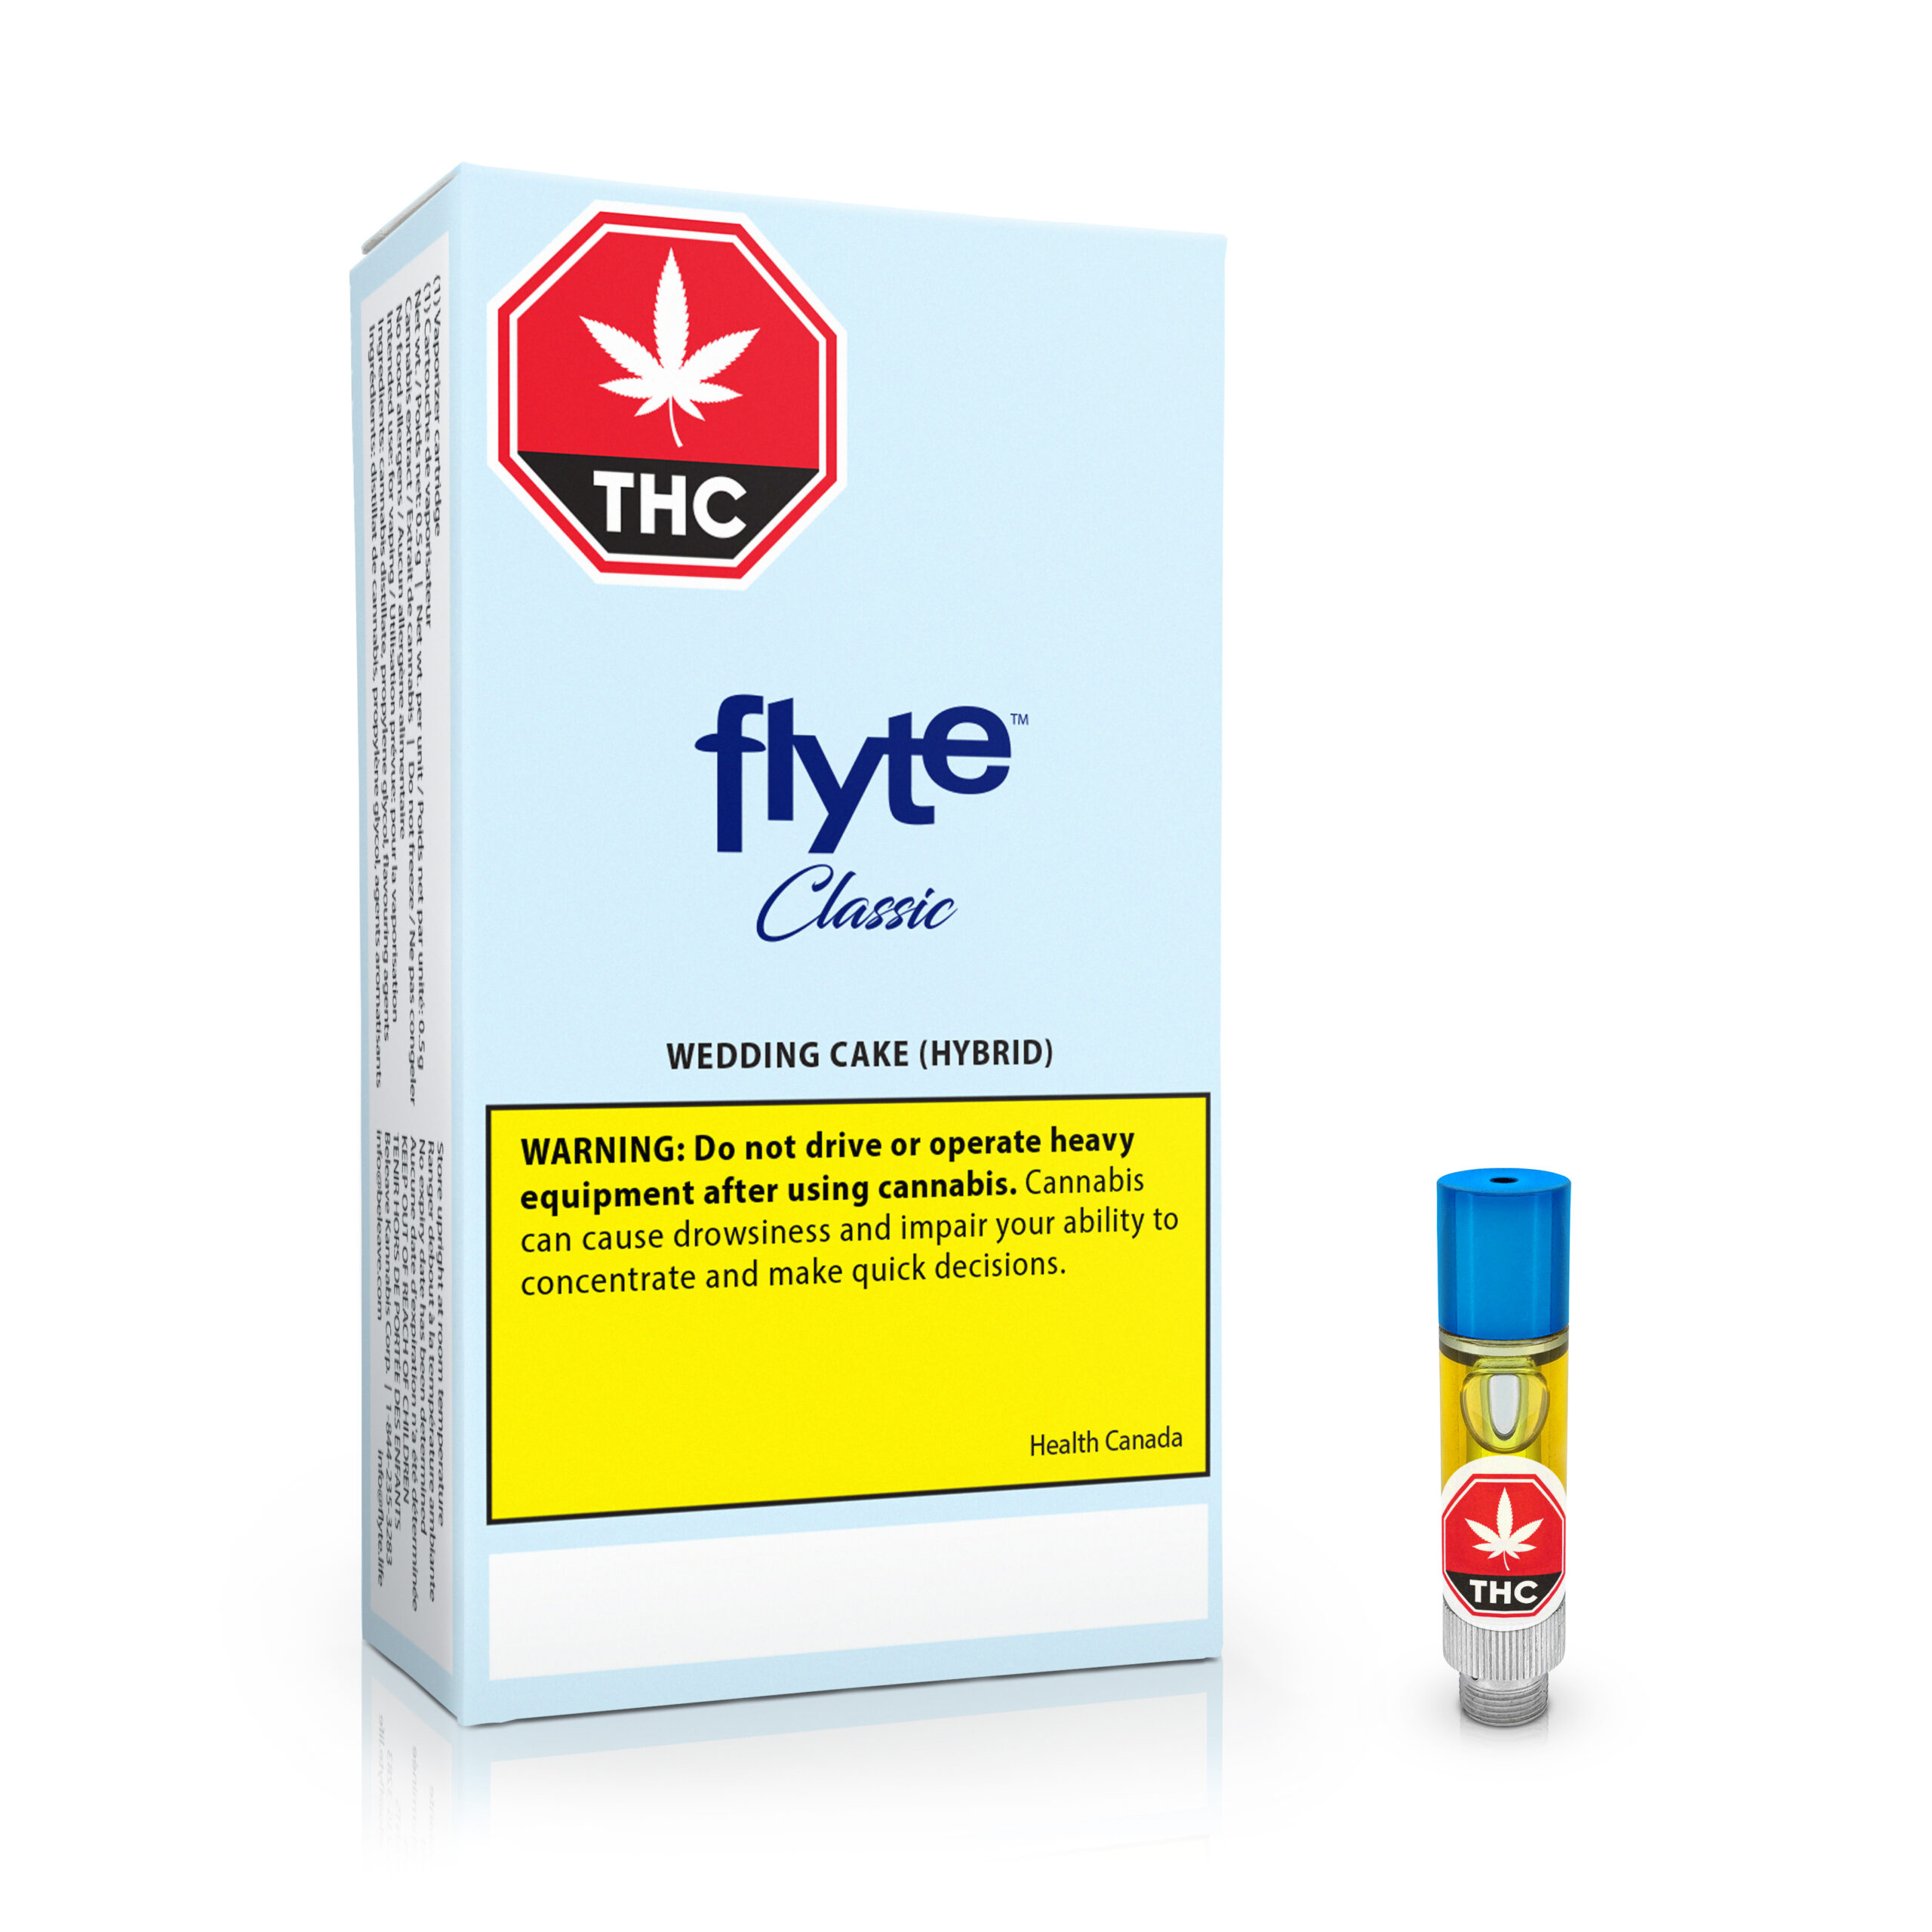 Flyte Classic cartridge package